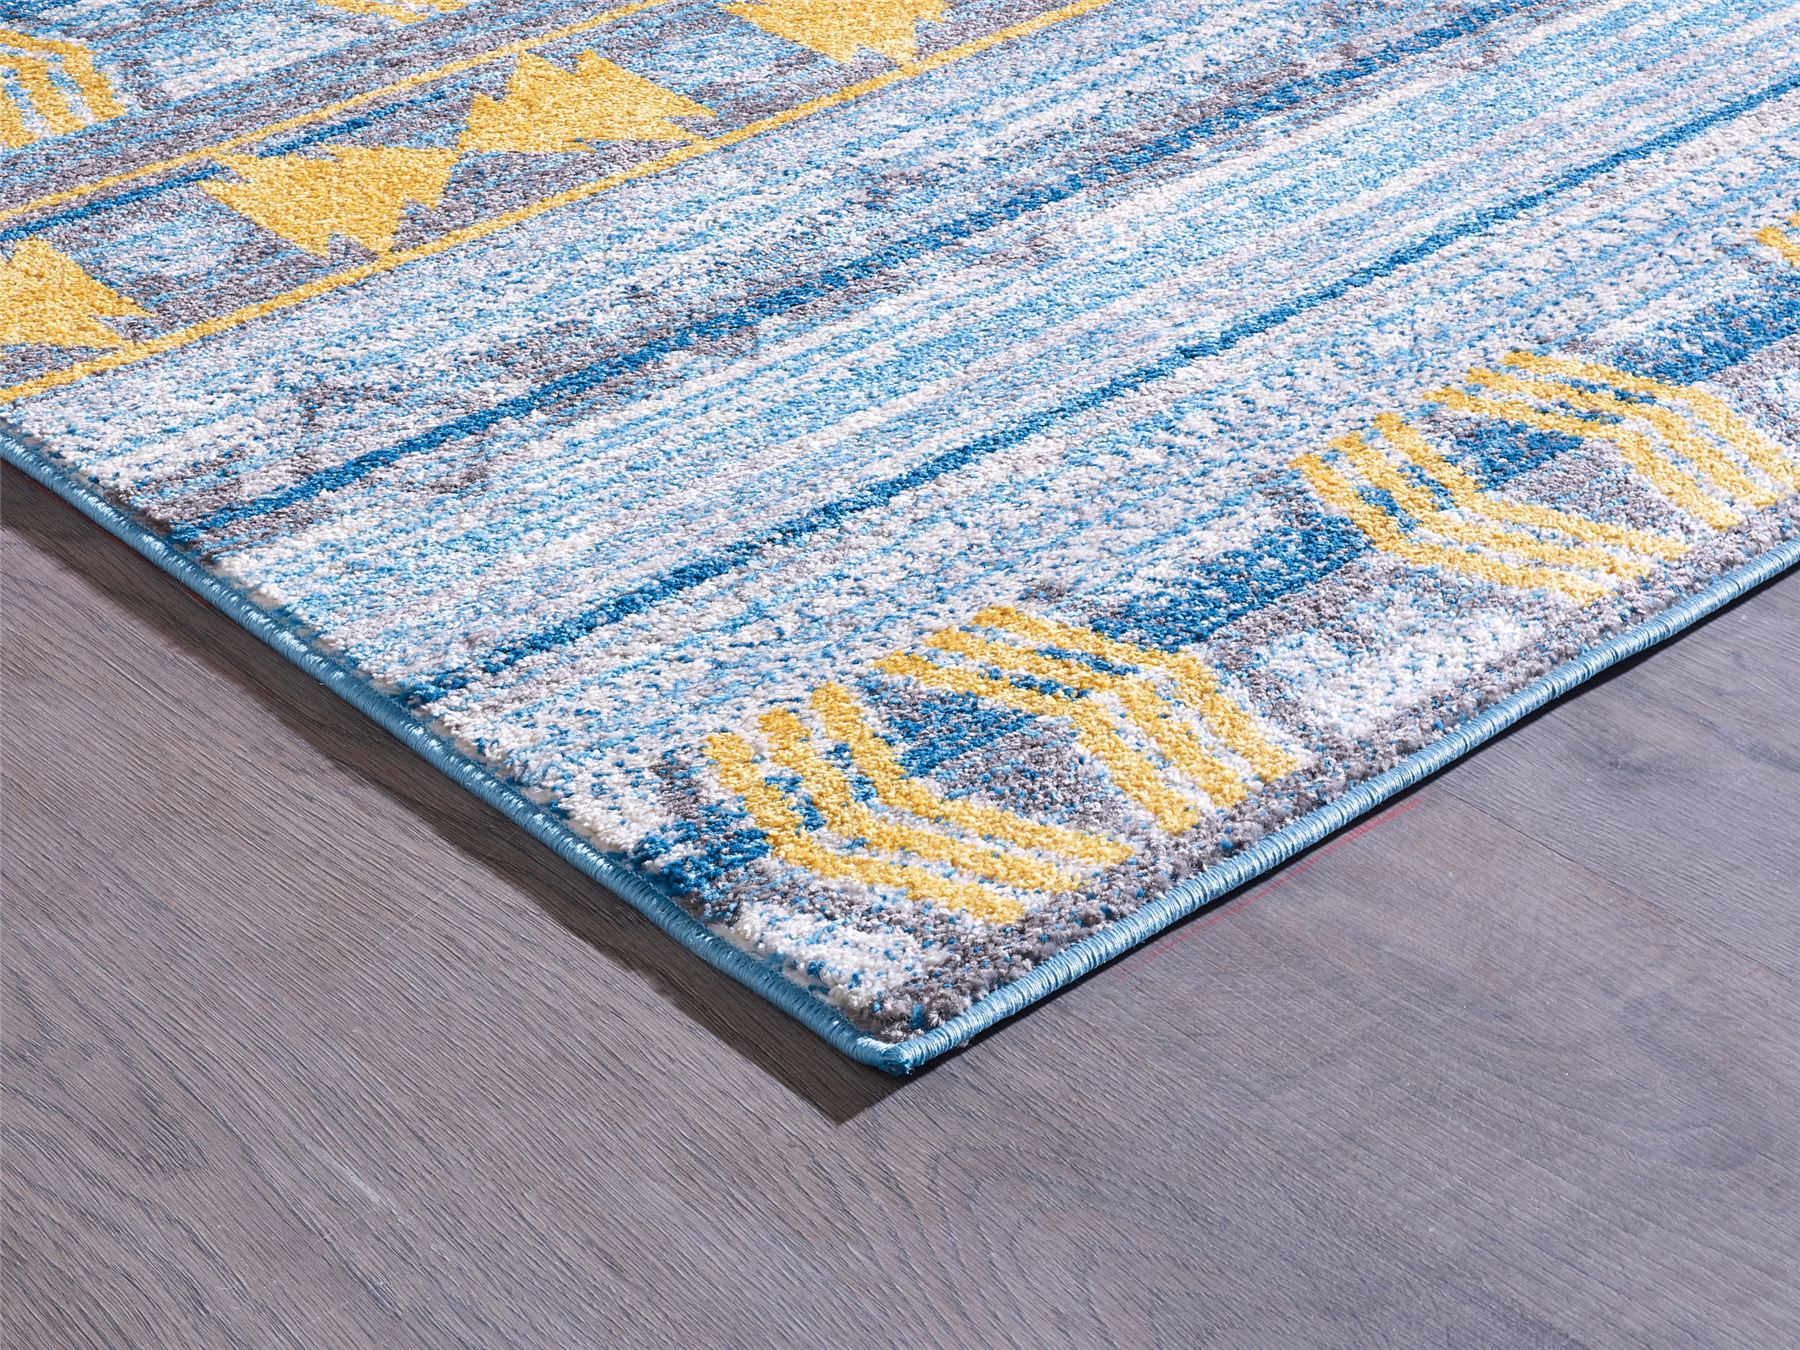 A2z rug sevilla large modern blue yellow tribal geometric bedroom home carpets ebay - Tappeti camera da letto amazon ...